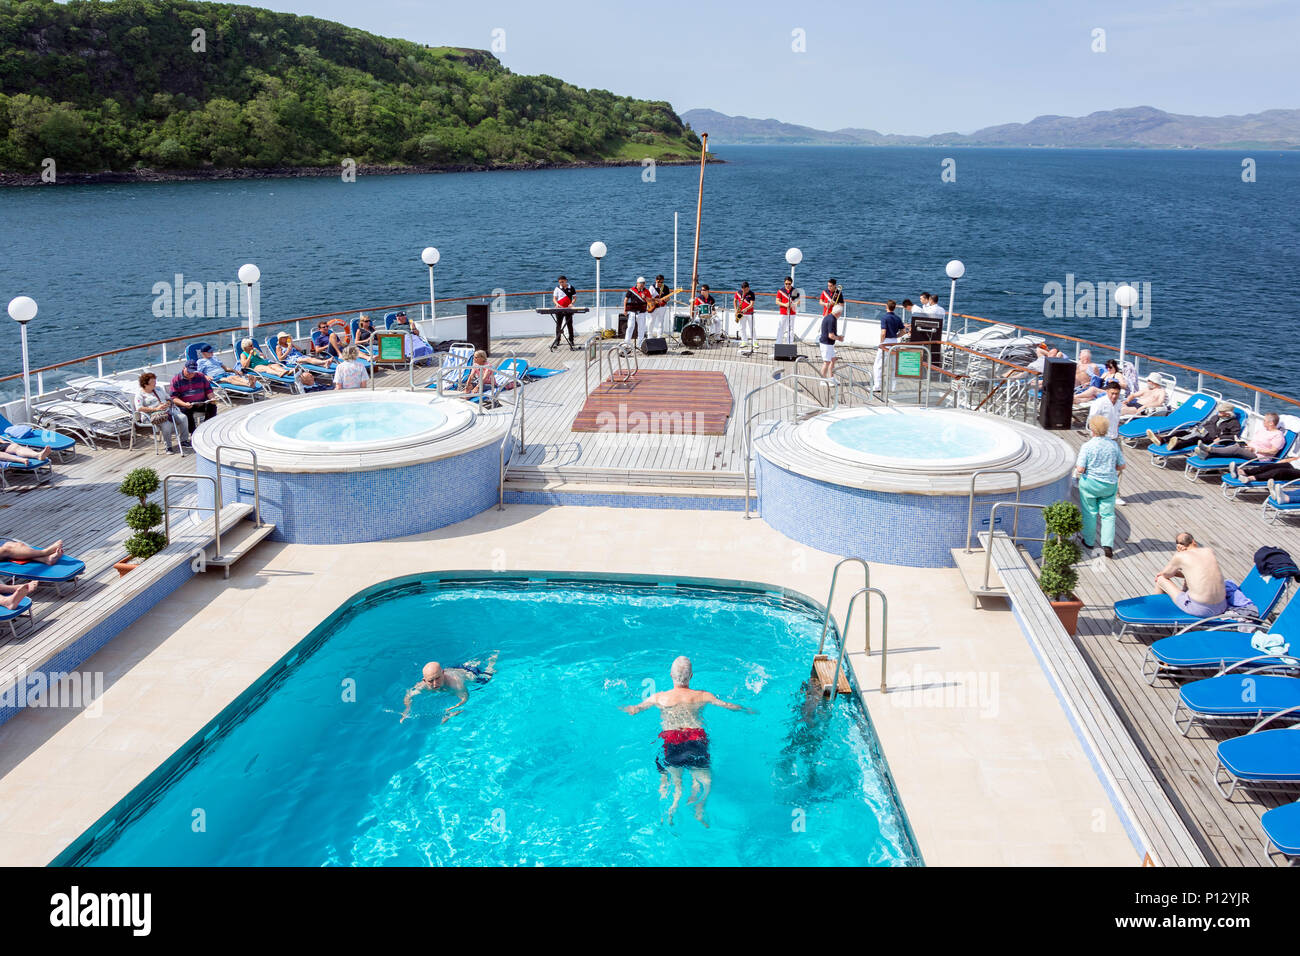 'Sail away' entertainment onboard Fred Olsen 'Boudicca' cruise ship on leaving Tobermory, Isle of Bute, Inner Hebrides, Scotland, United Kingdom - Stock Image